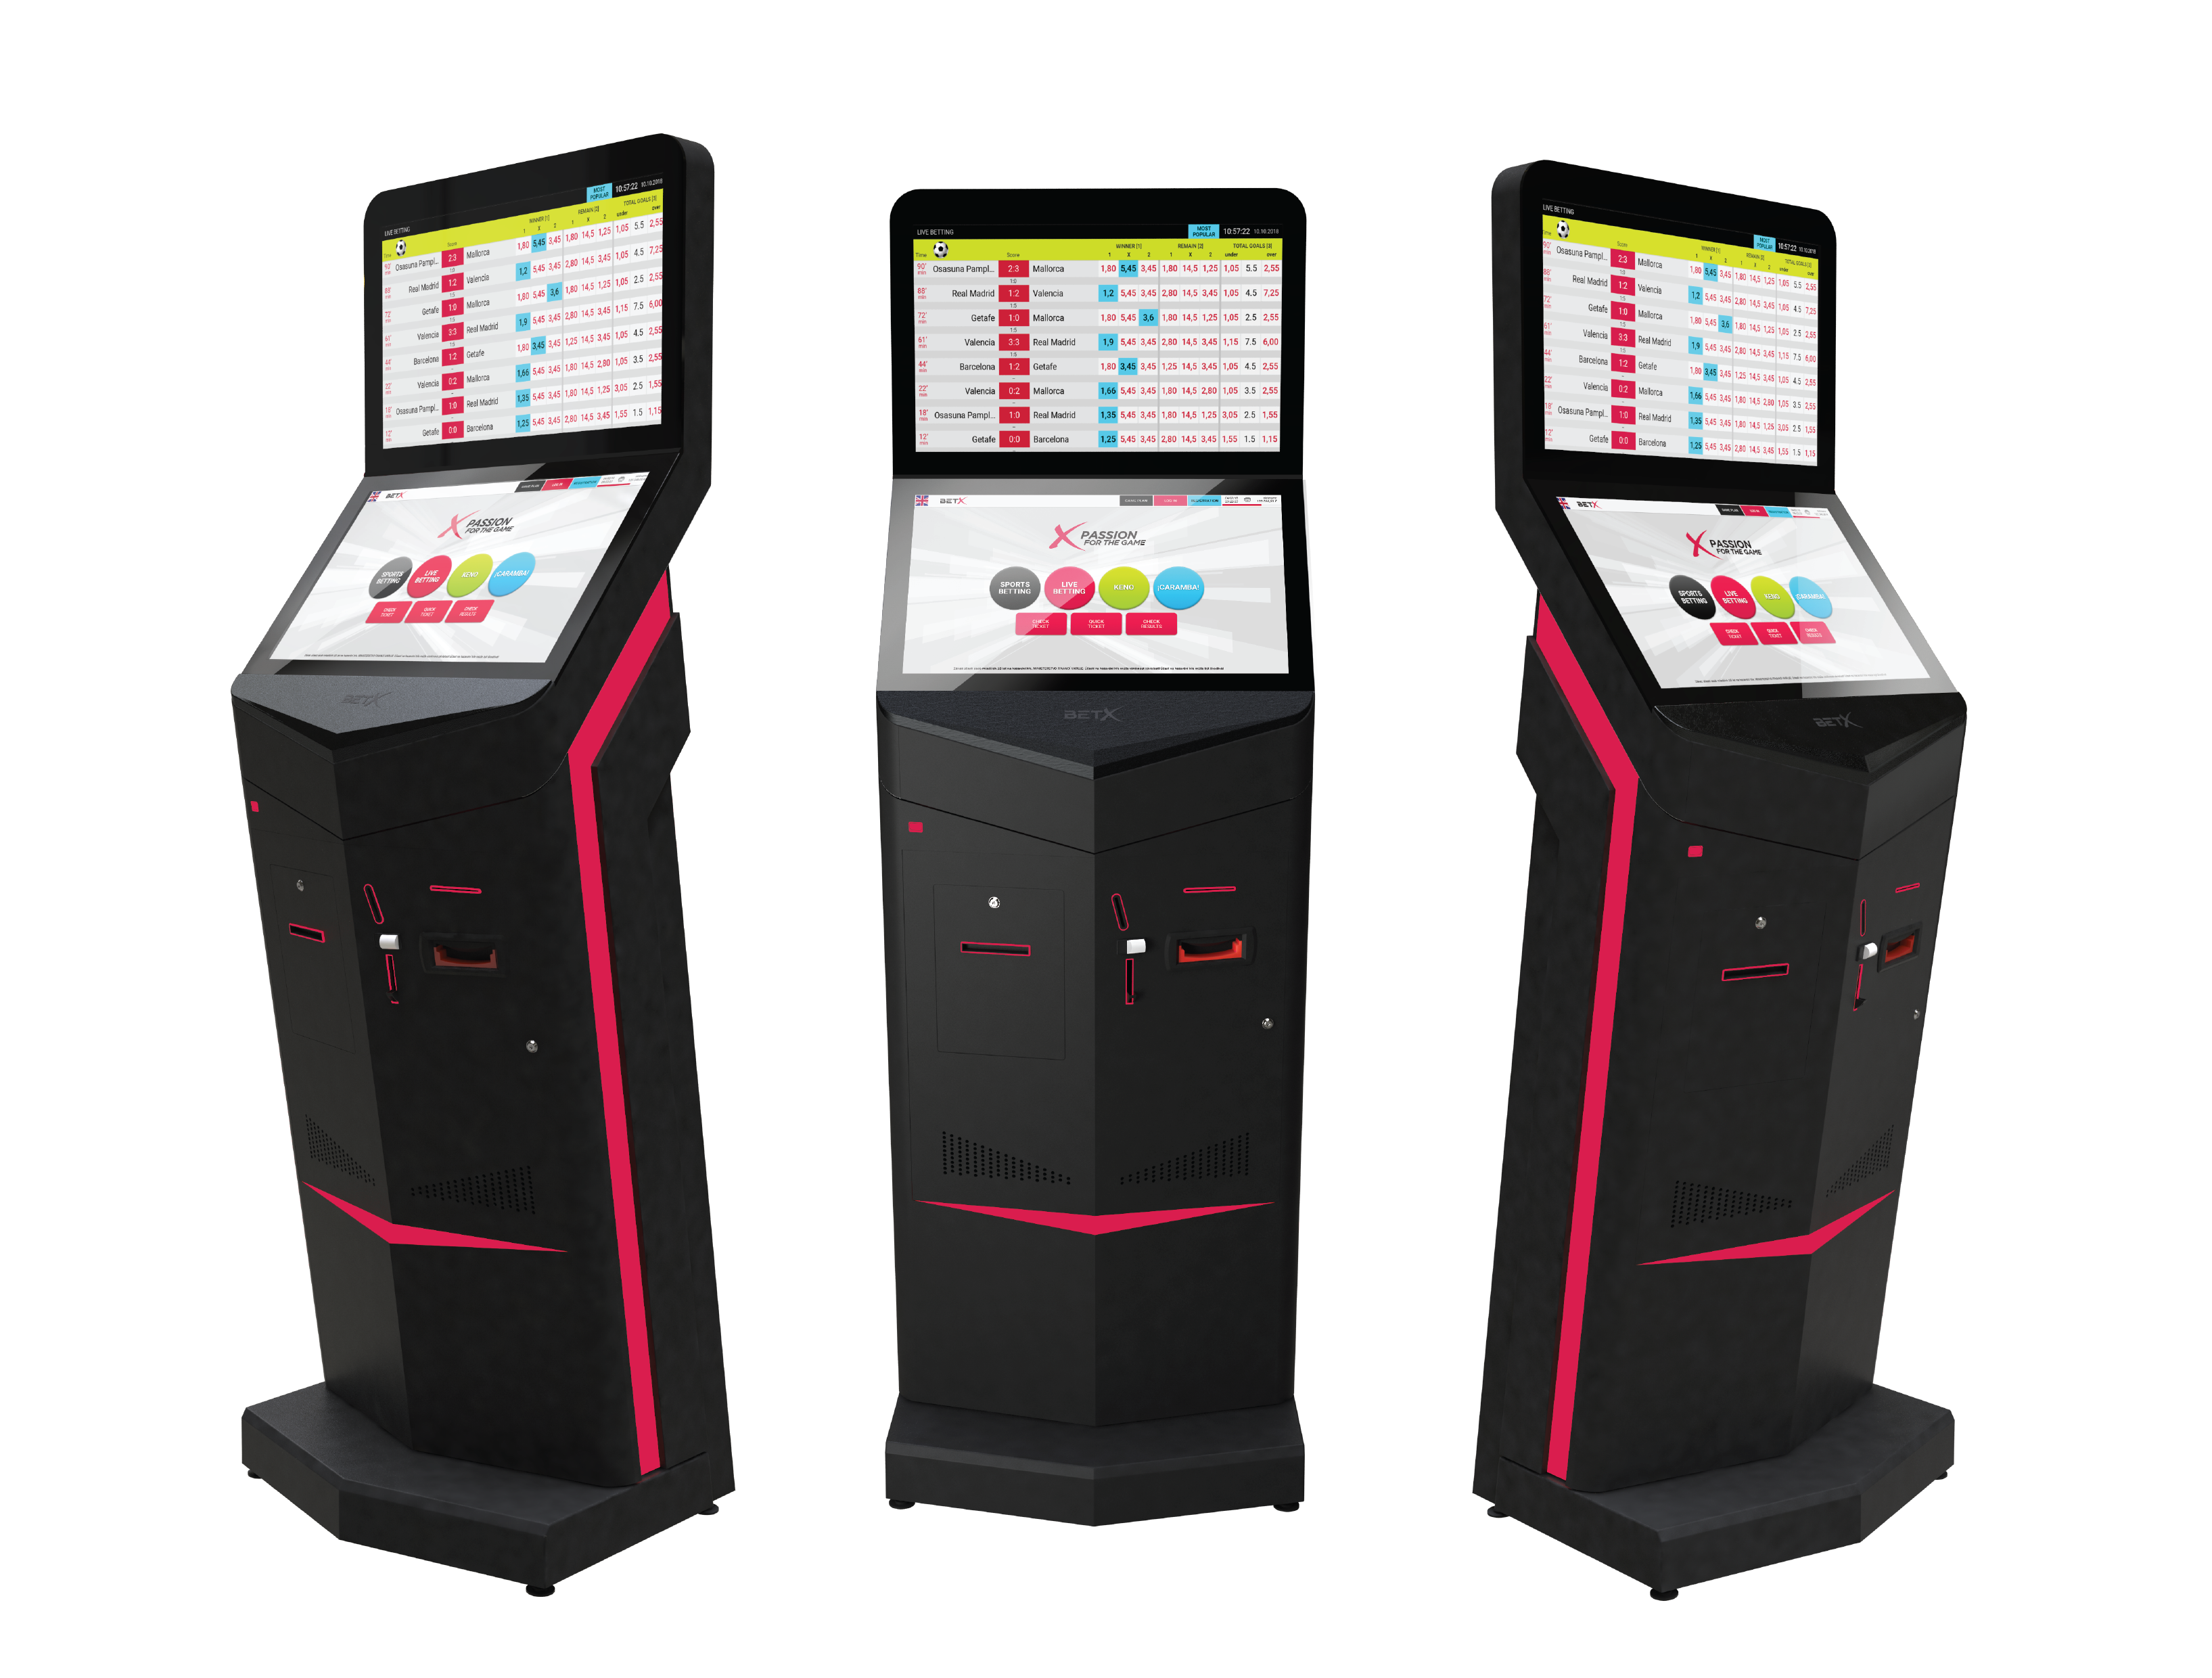 Automated payout machines betting terminals rdp all ireland football championship 2021 betting tips